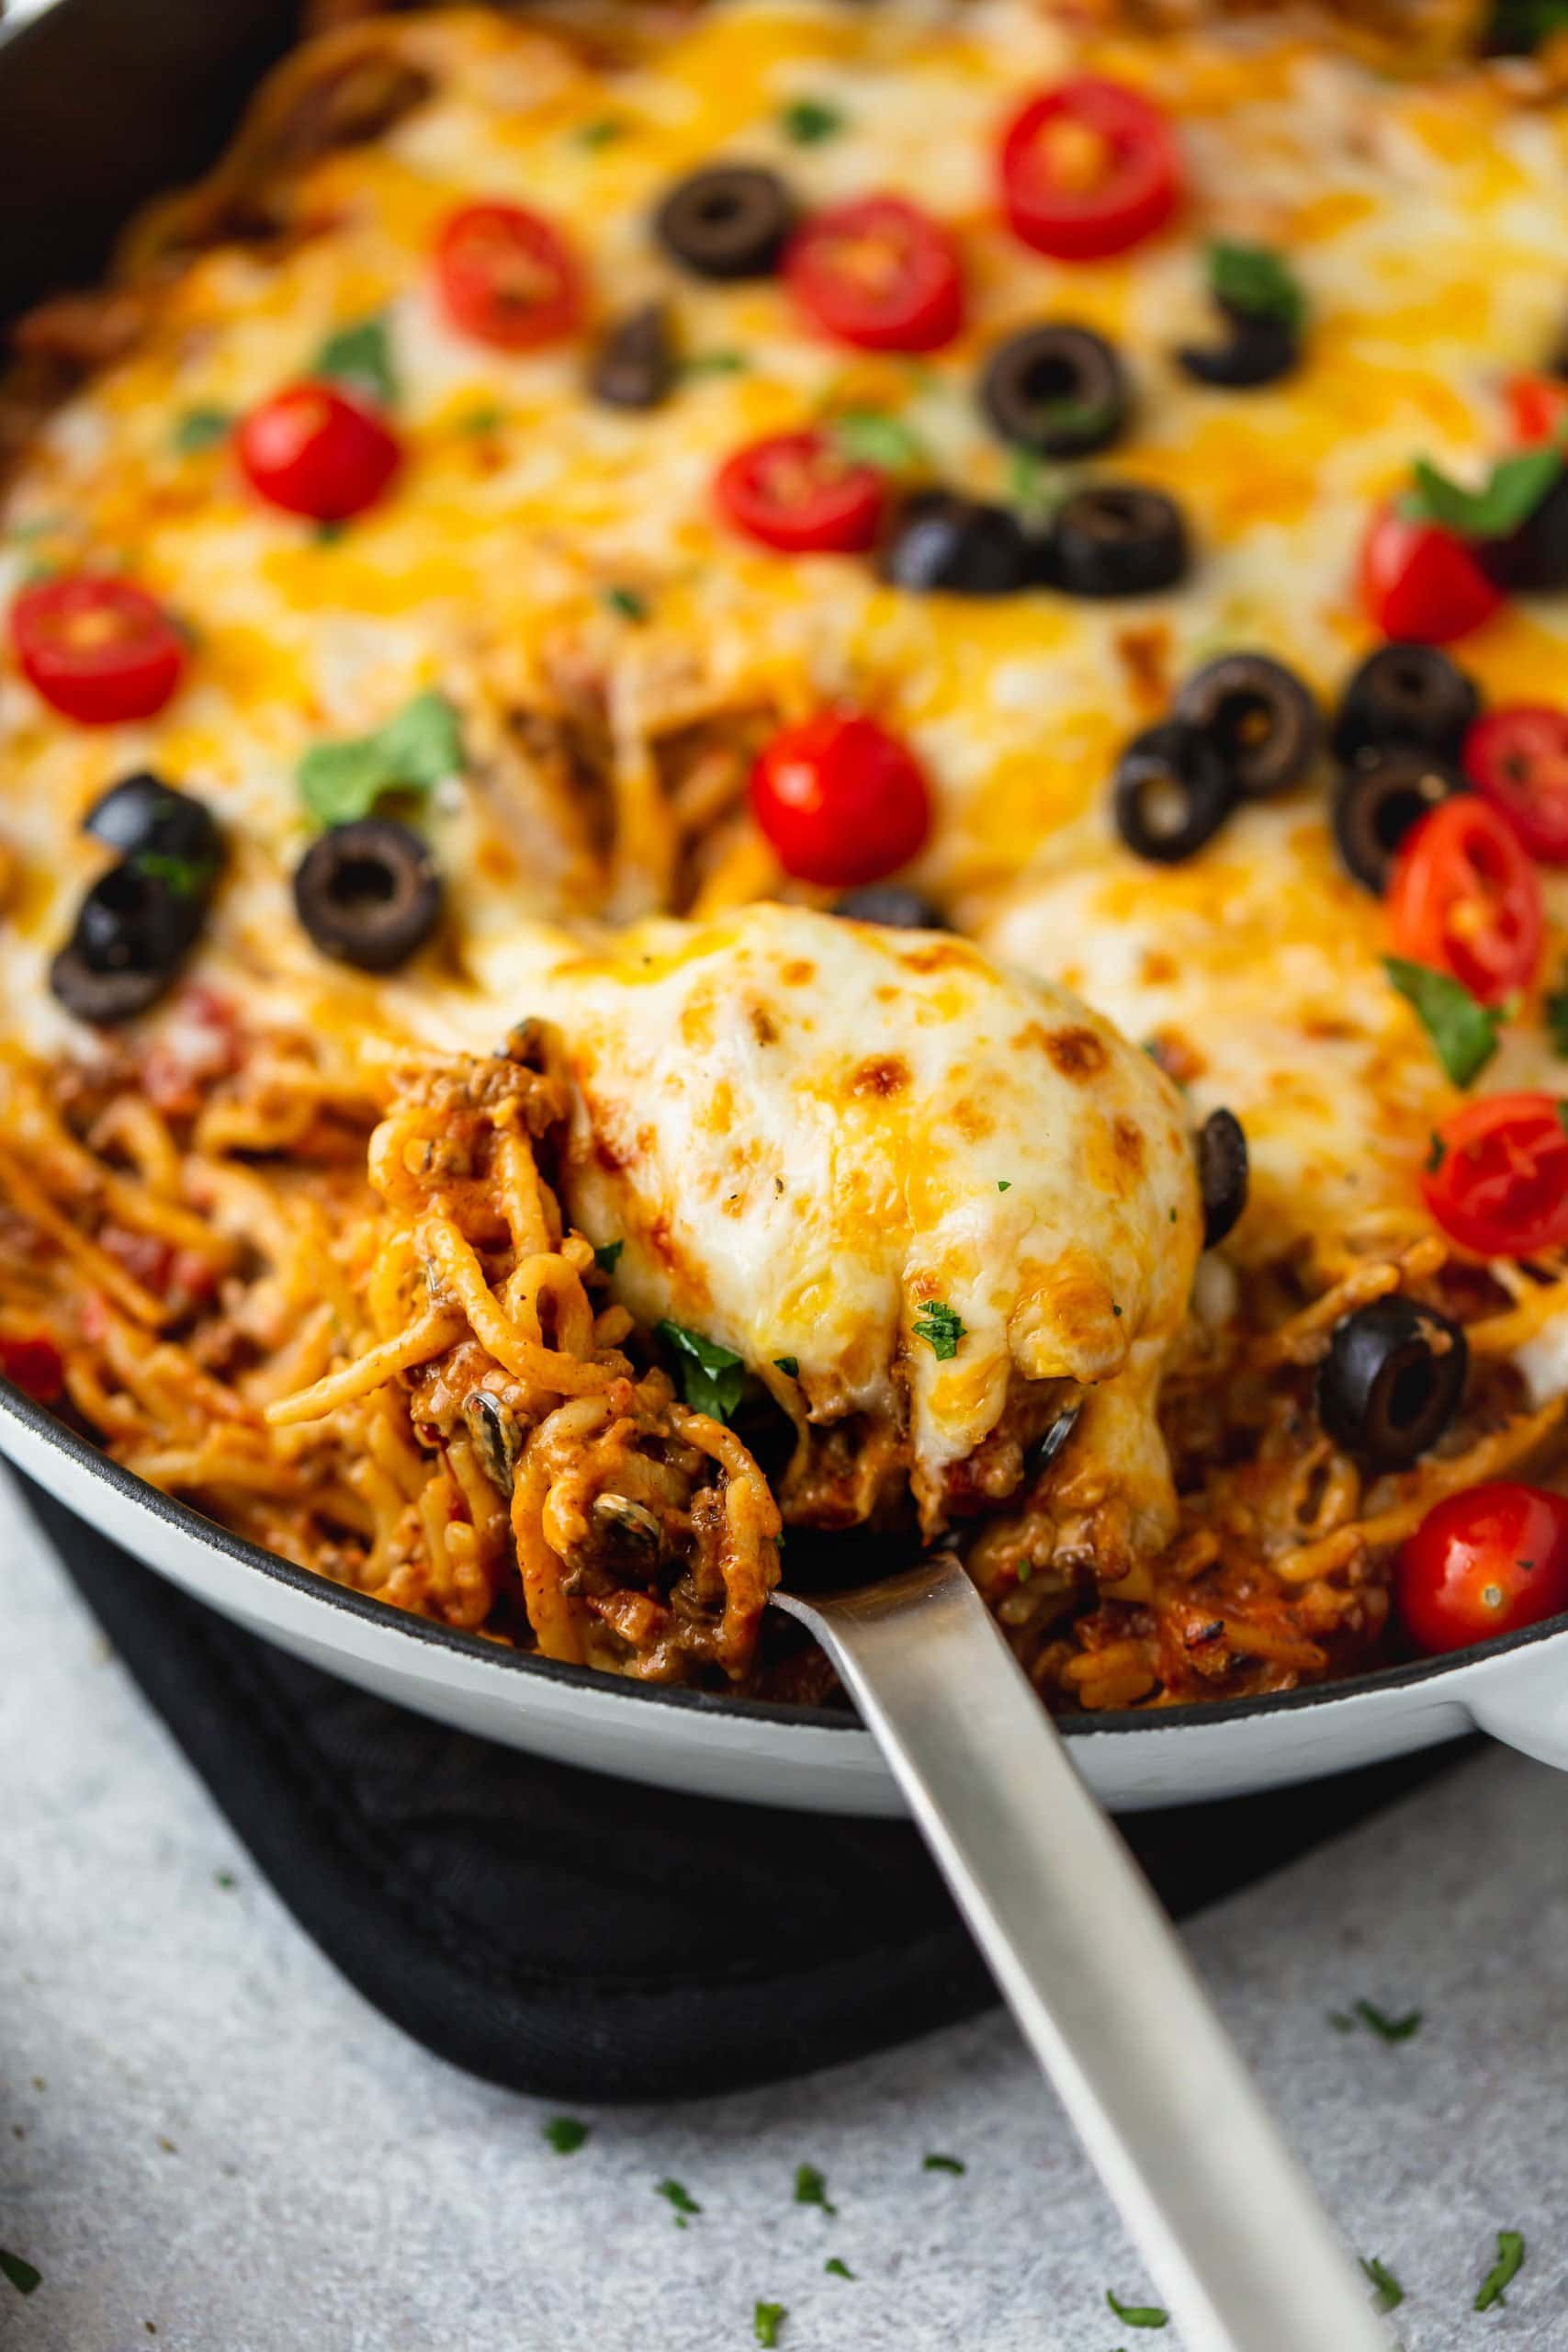 A skillet full of cheesy ground beef taco spaghetti. A serving spoon is in the pot and the spaghetti is topped with melted cheese, tomatoes, olives, green onions and cilantro.